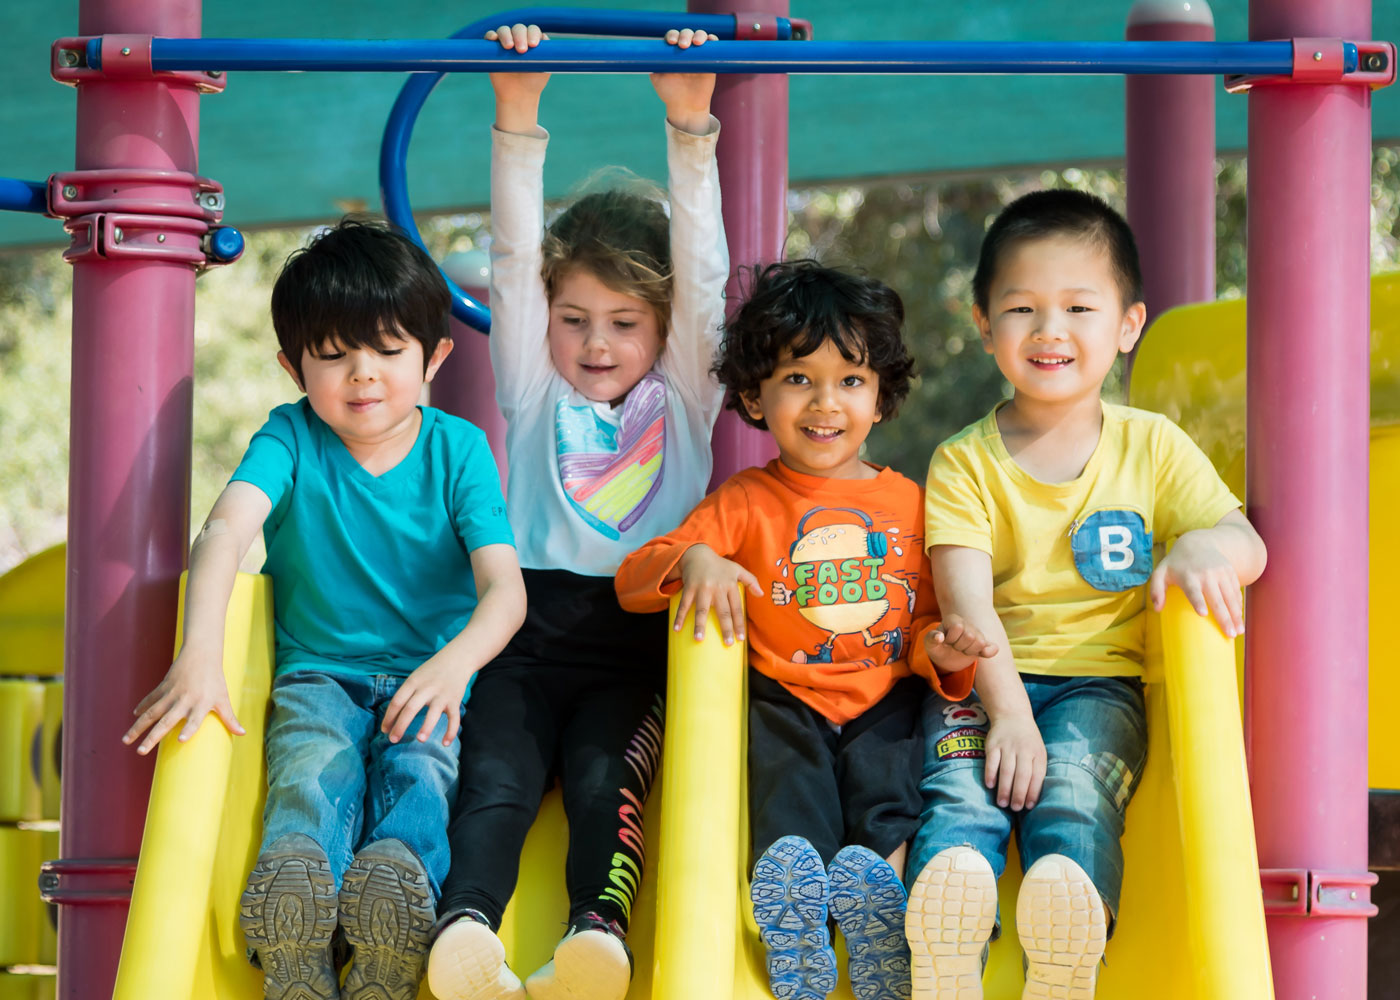 cdc-child-development-center-austin-tx